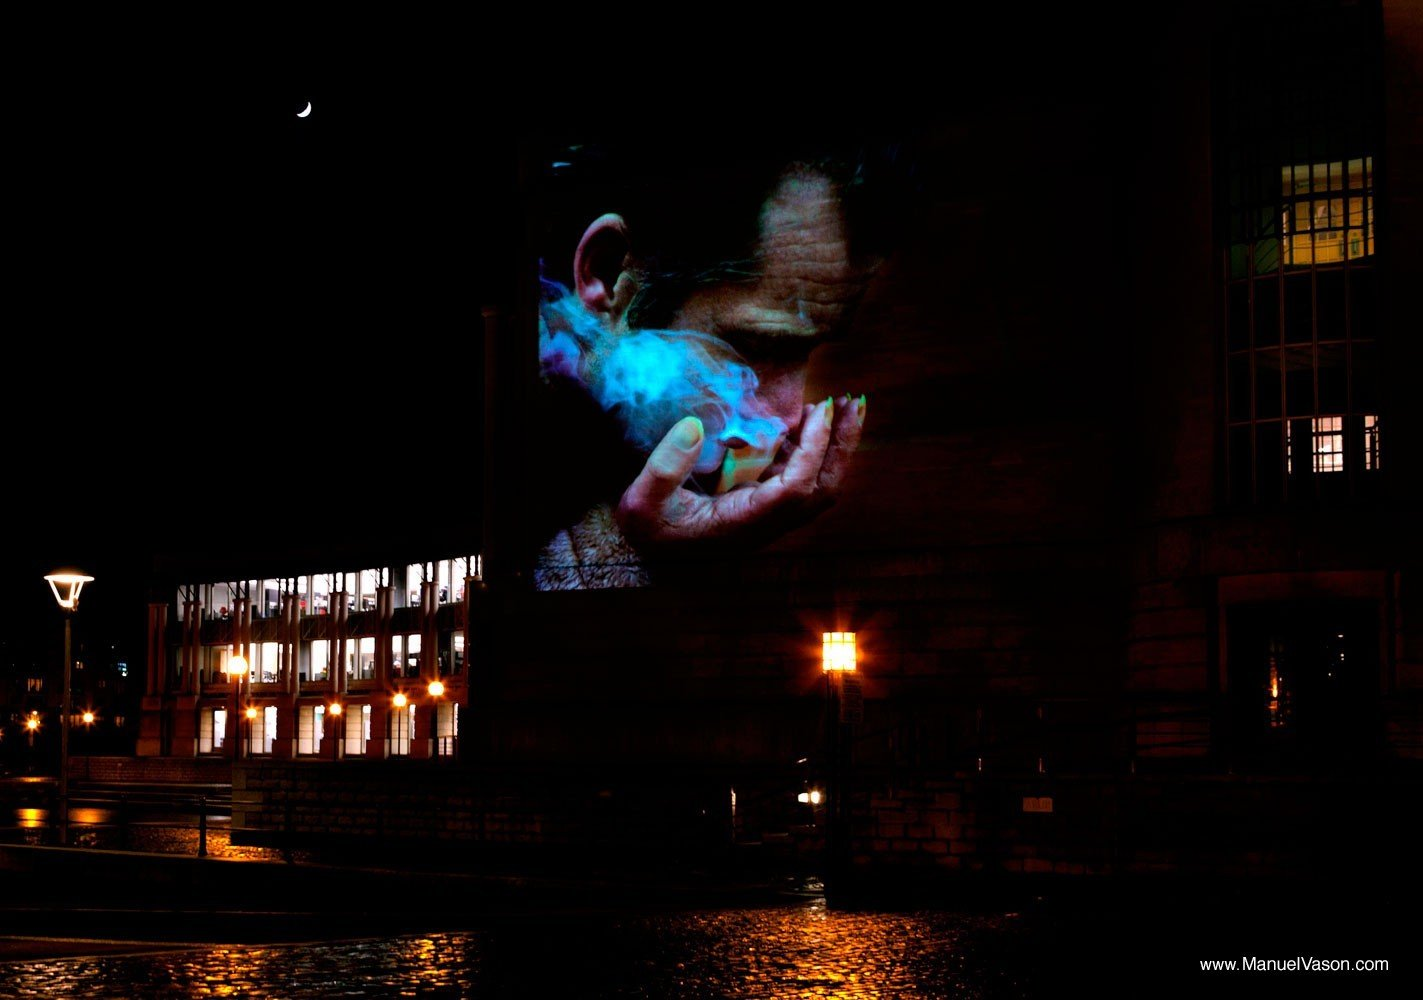 Manuel Vason, Still Image Moving, Inbetween Time Festival, Bristol [2010]